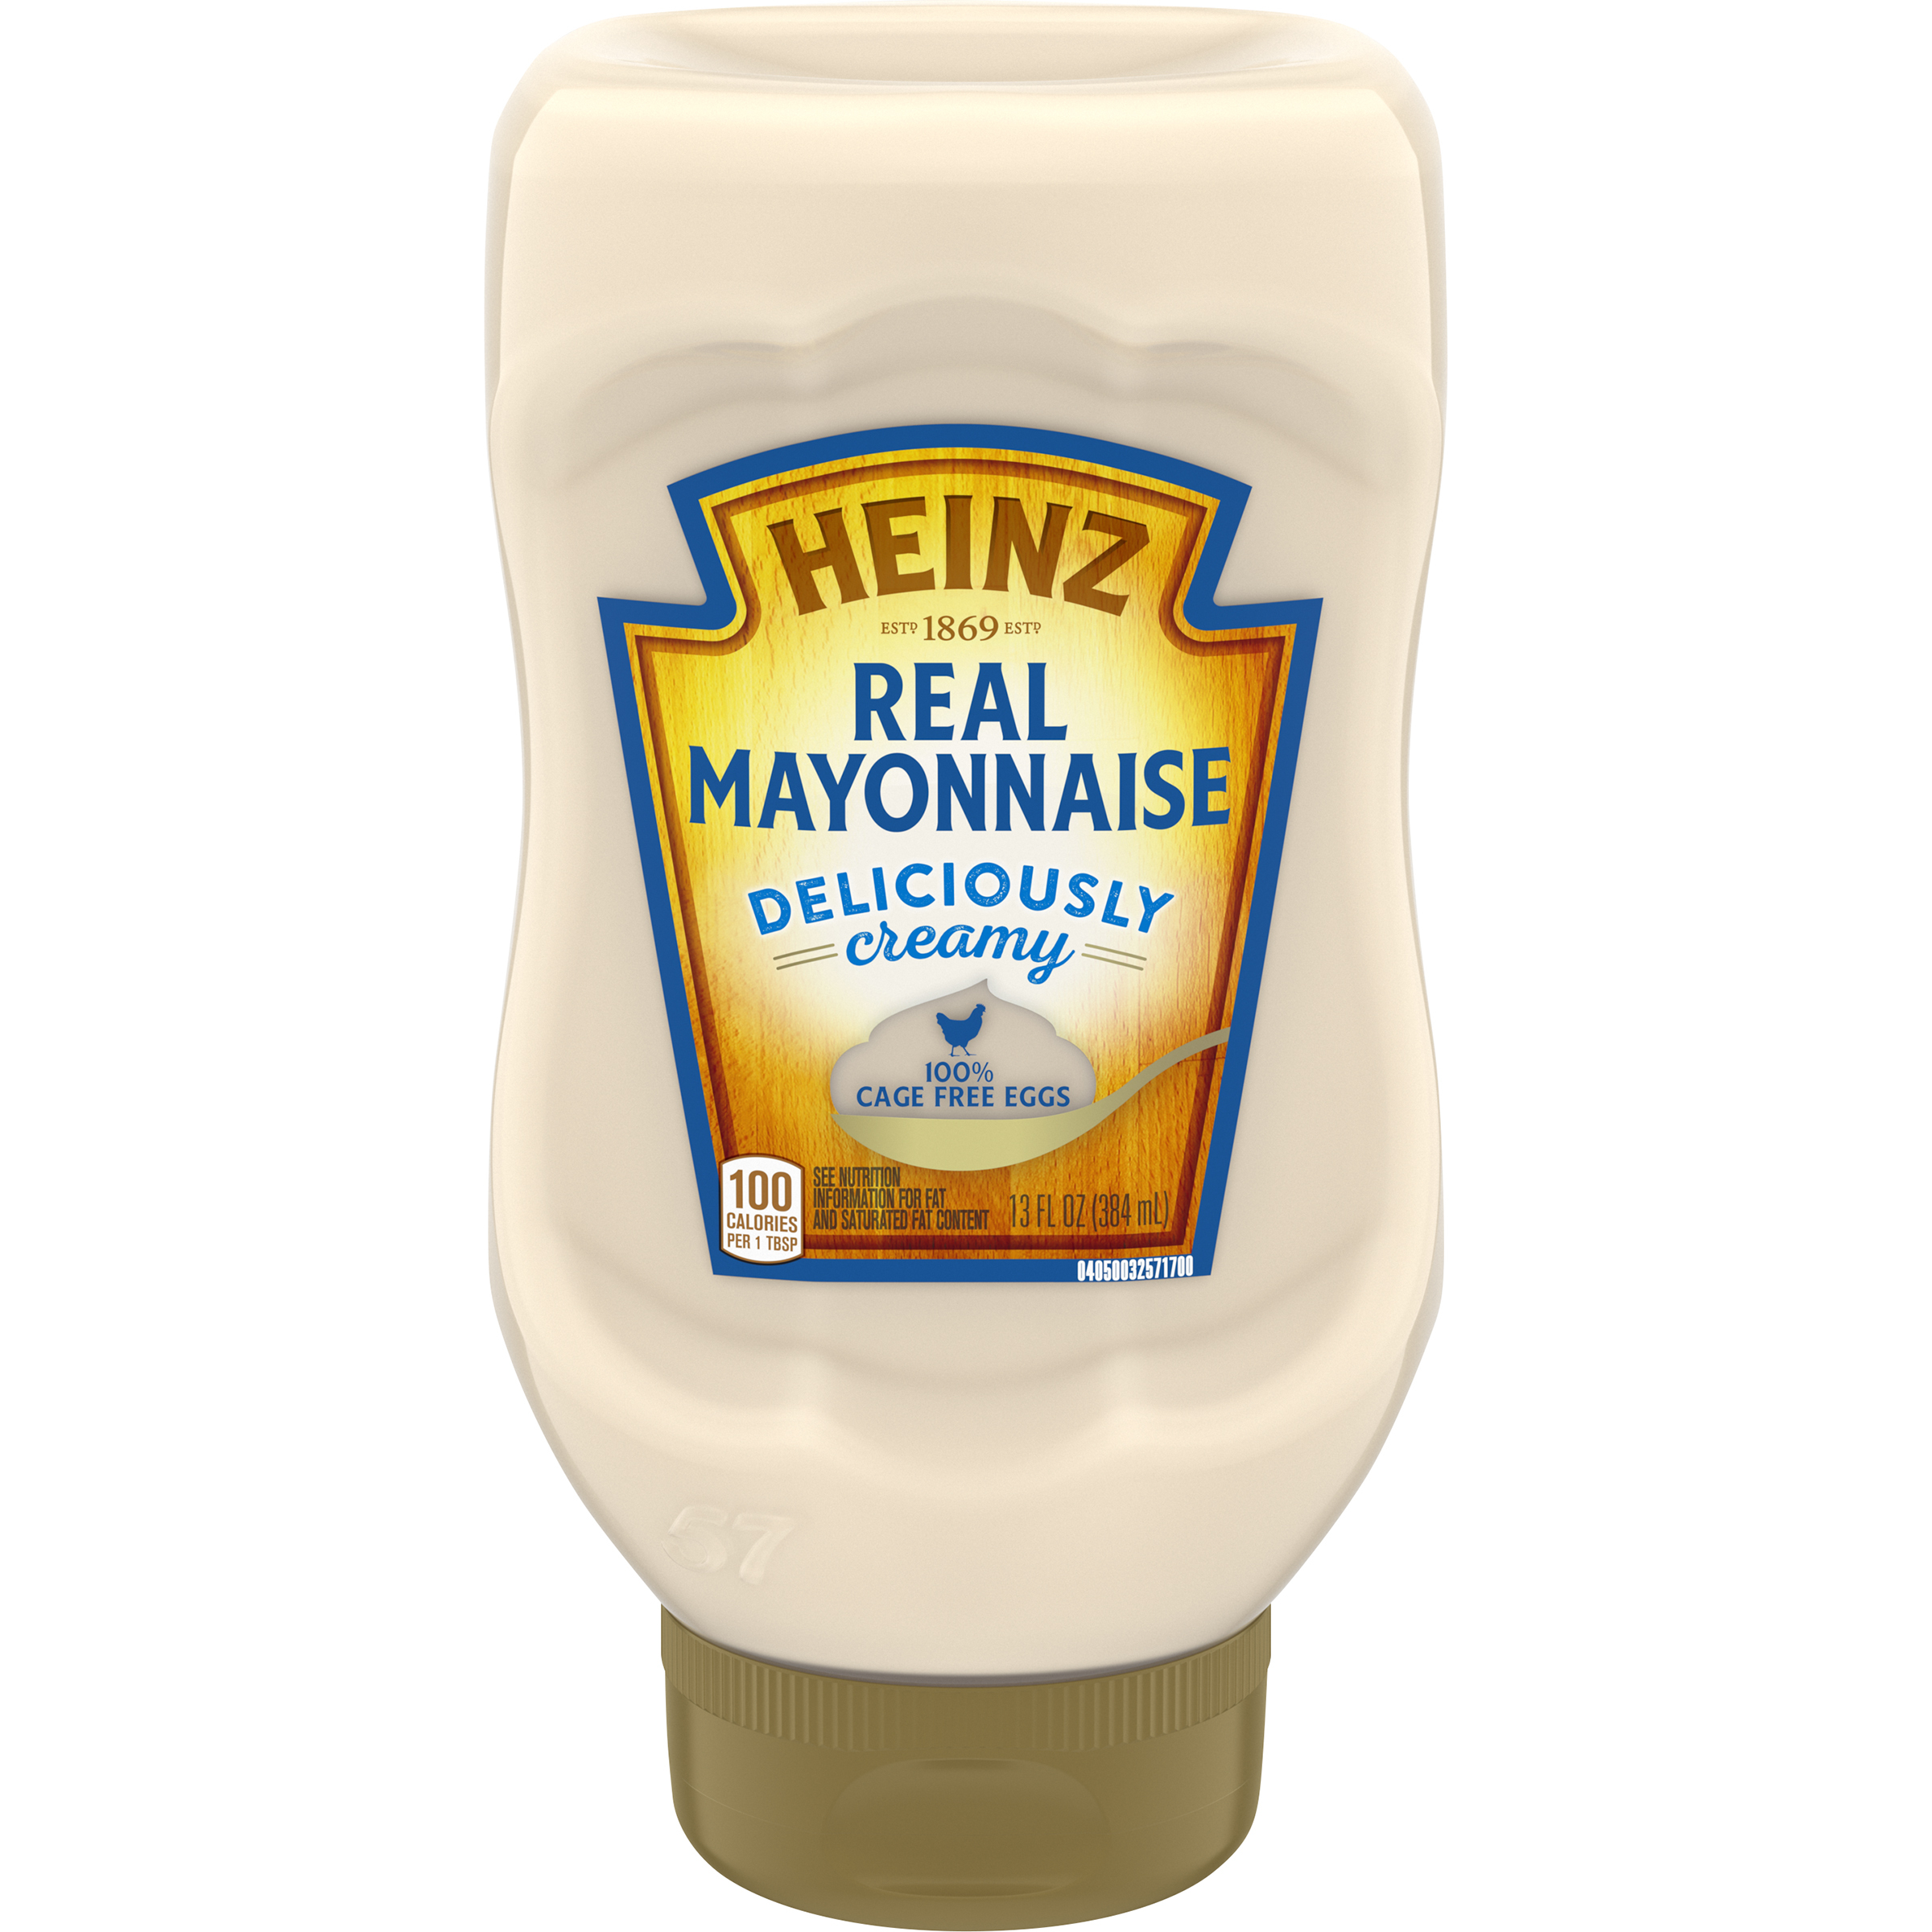 Heinz Real Mayonnaise - 100% Cage Free Eggs (13 oz.) image